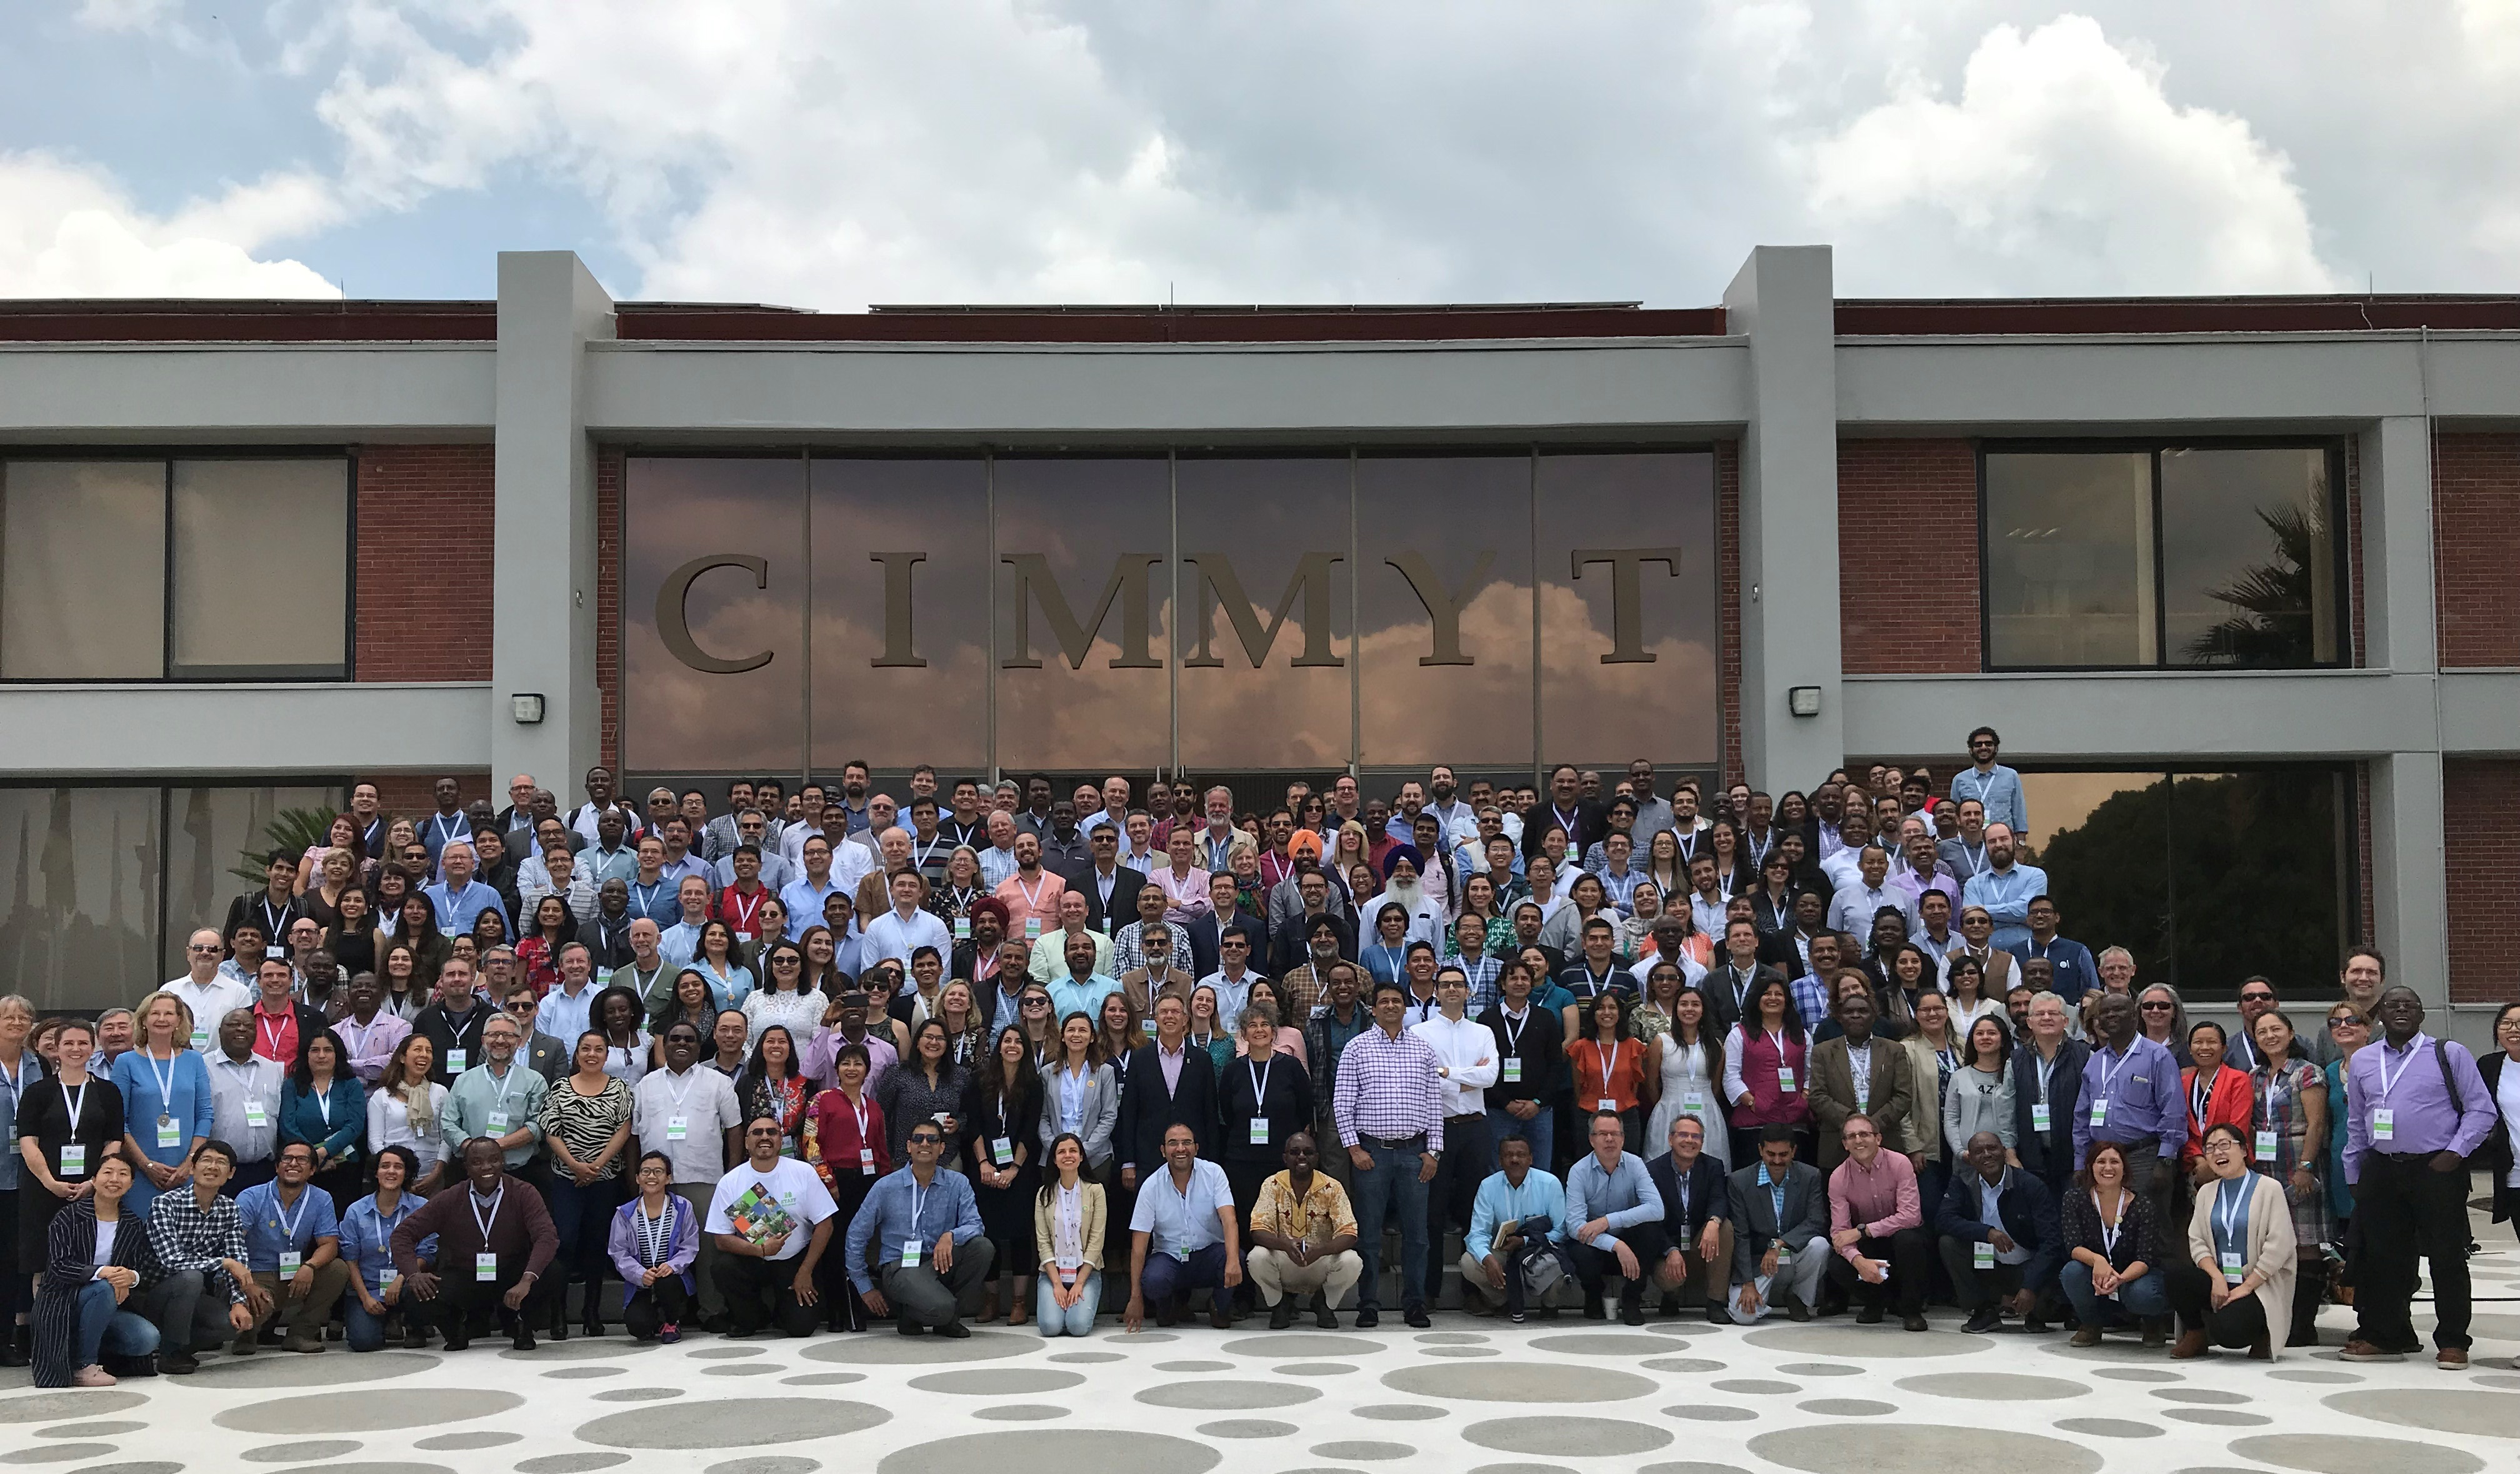 CIMMYT staff from offices worldwide pose for a group photo at Science Week 2018. (Photo: CIMMYT)